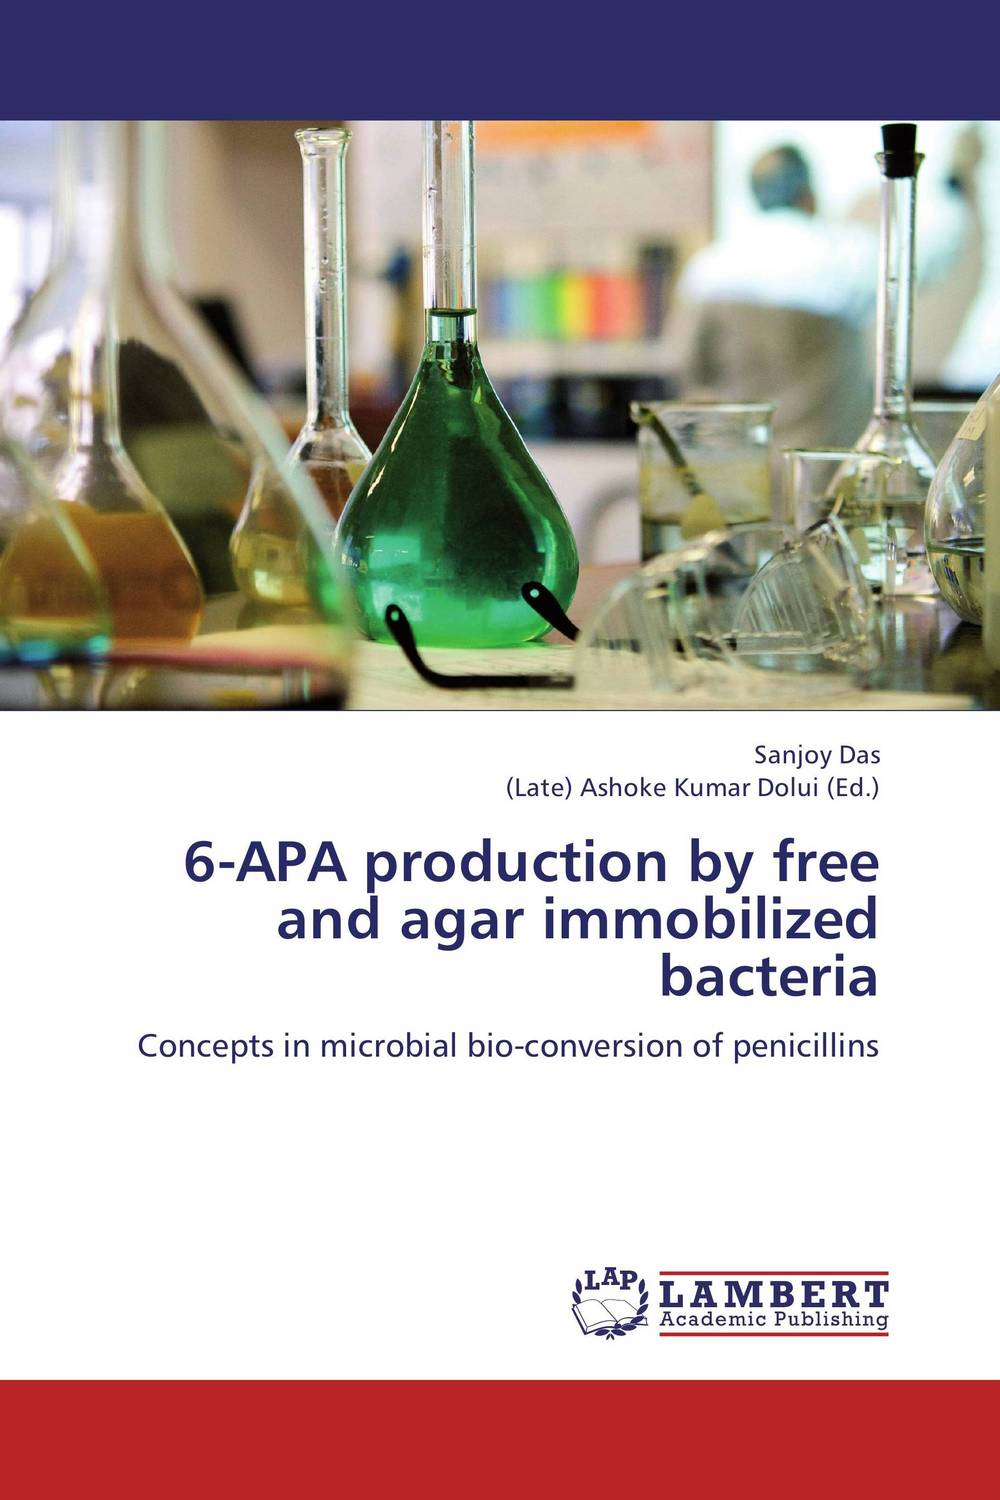 6-APA production by free and agar immobilized bacteria adding value to the citrus pulp by enzyme biotechnology production